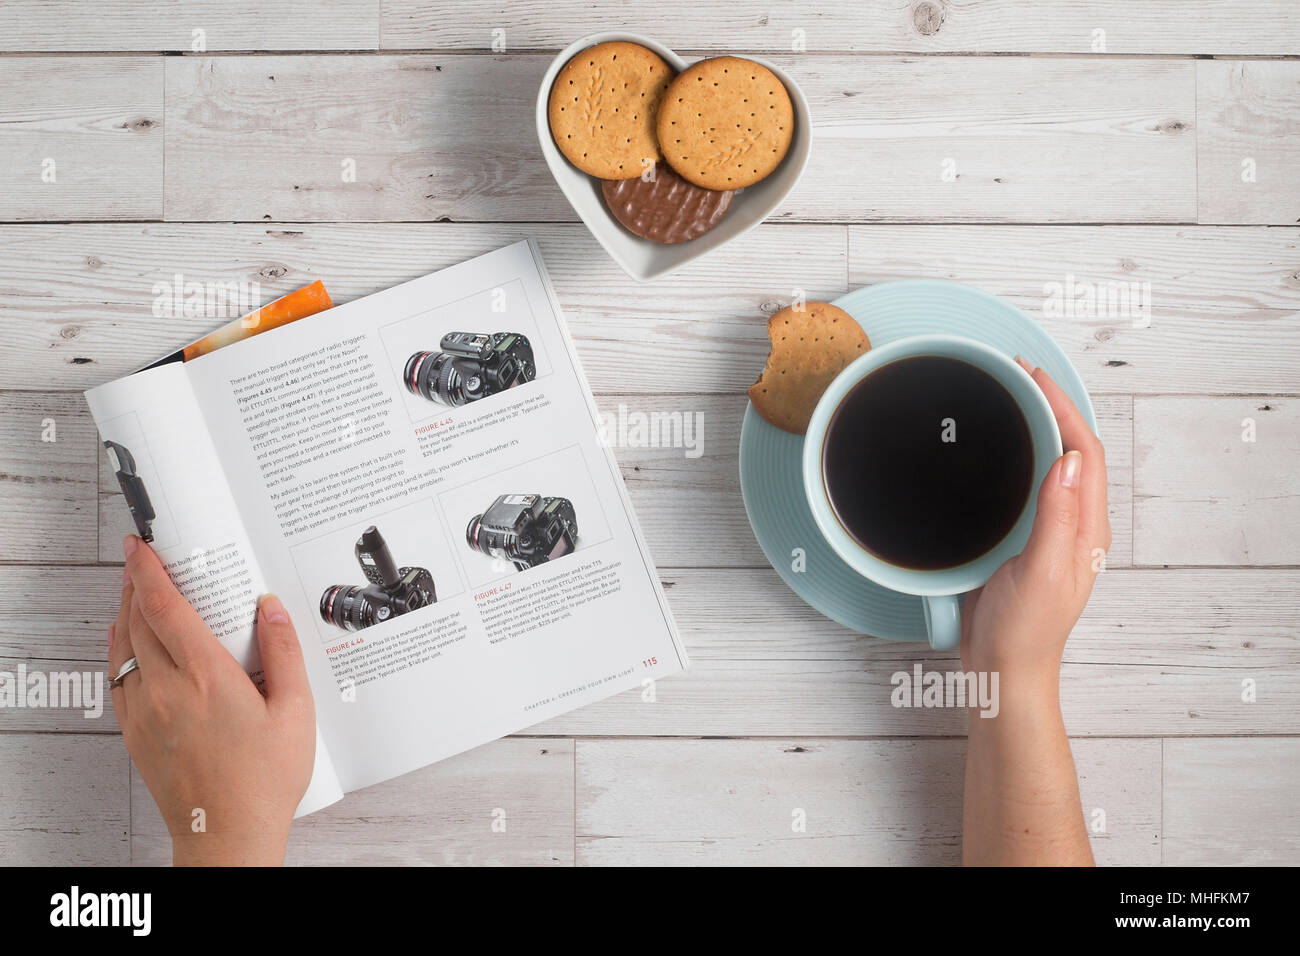 early morning enjoying coffee and reading about  photography - Stock Image